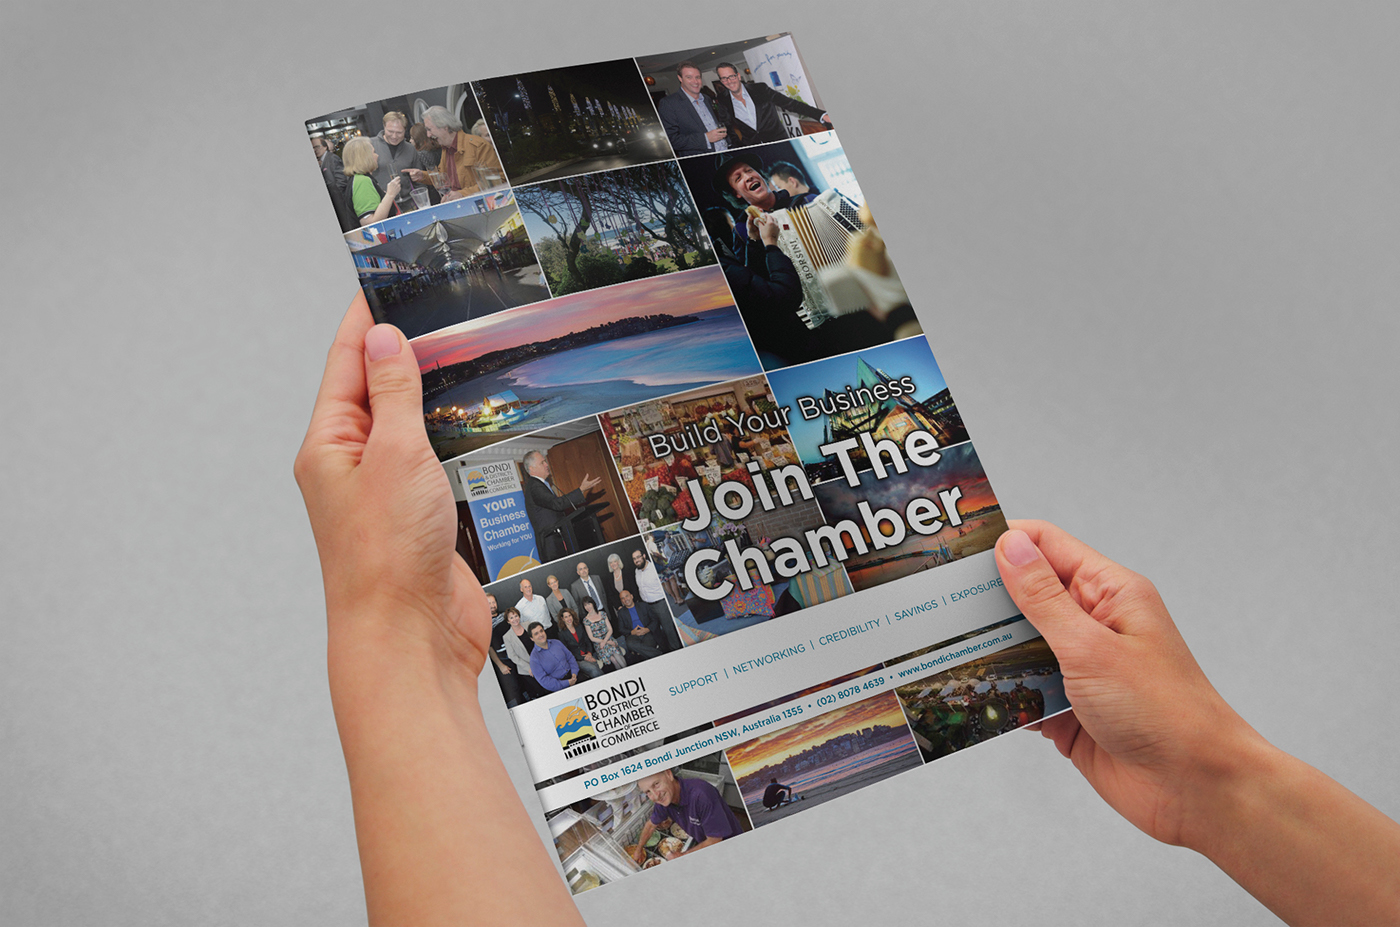 Bondi & Districts Chamber of Commerce A4 brochure